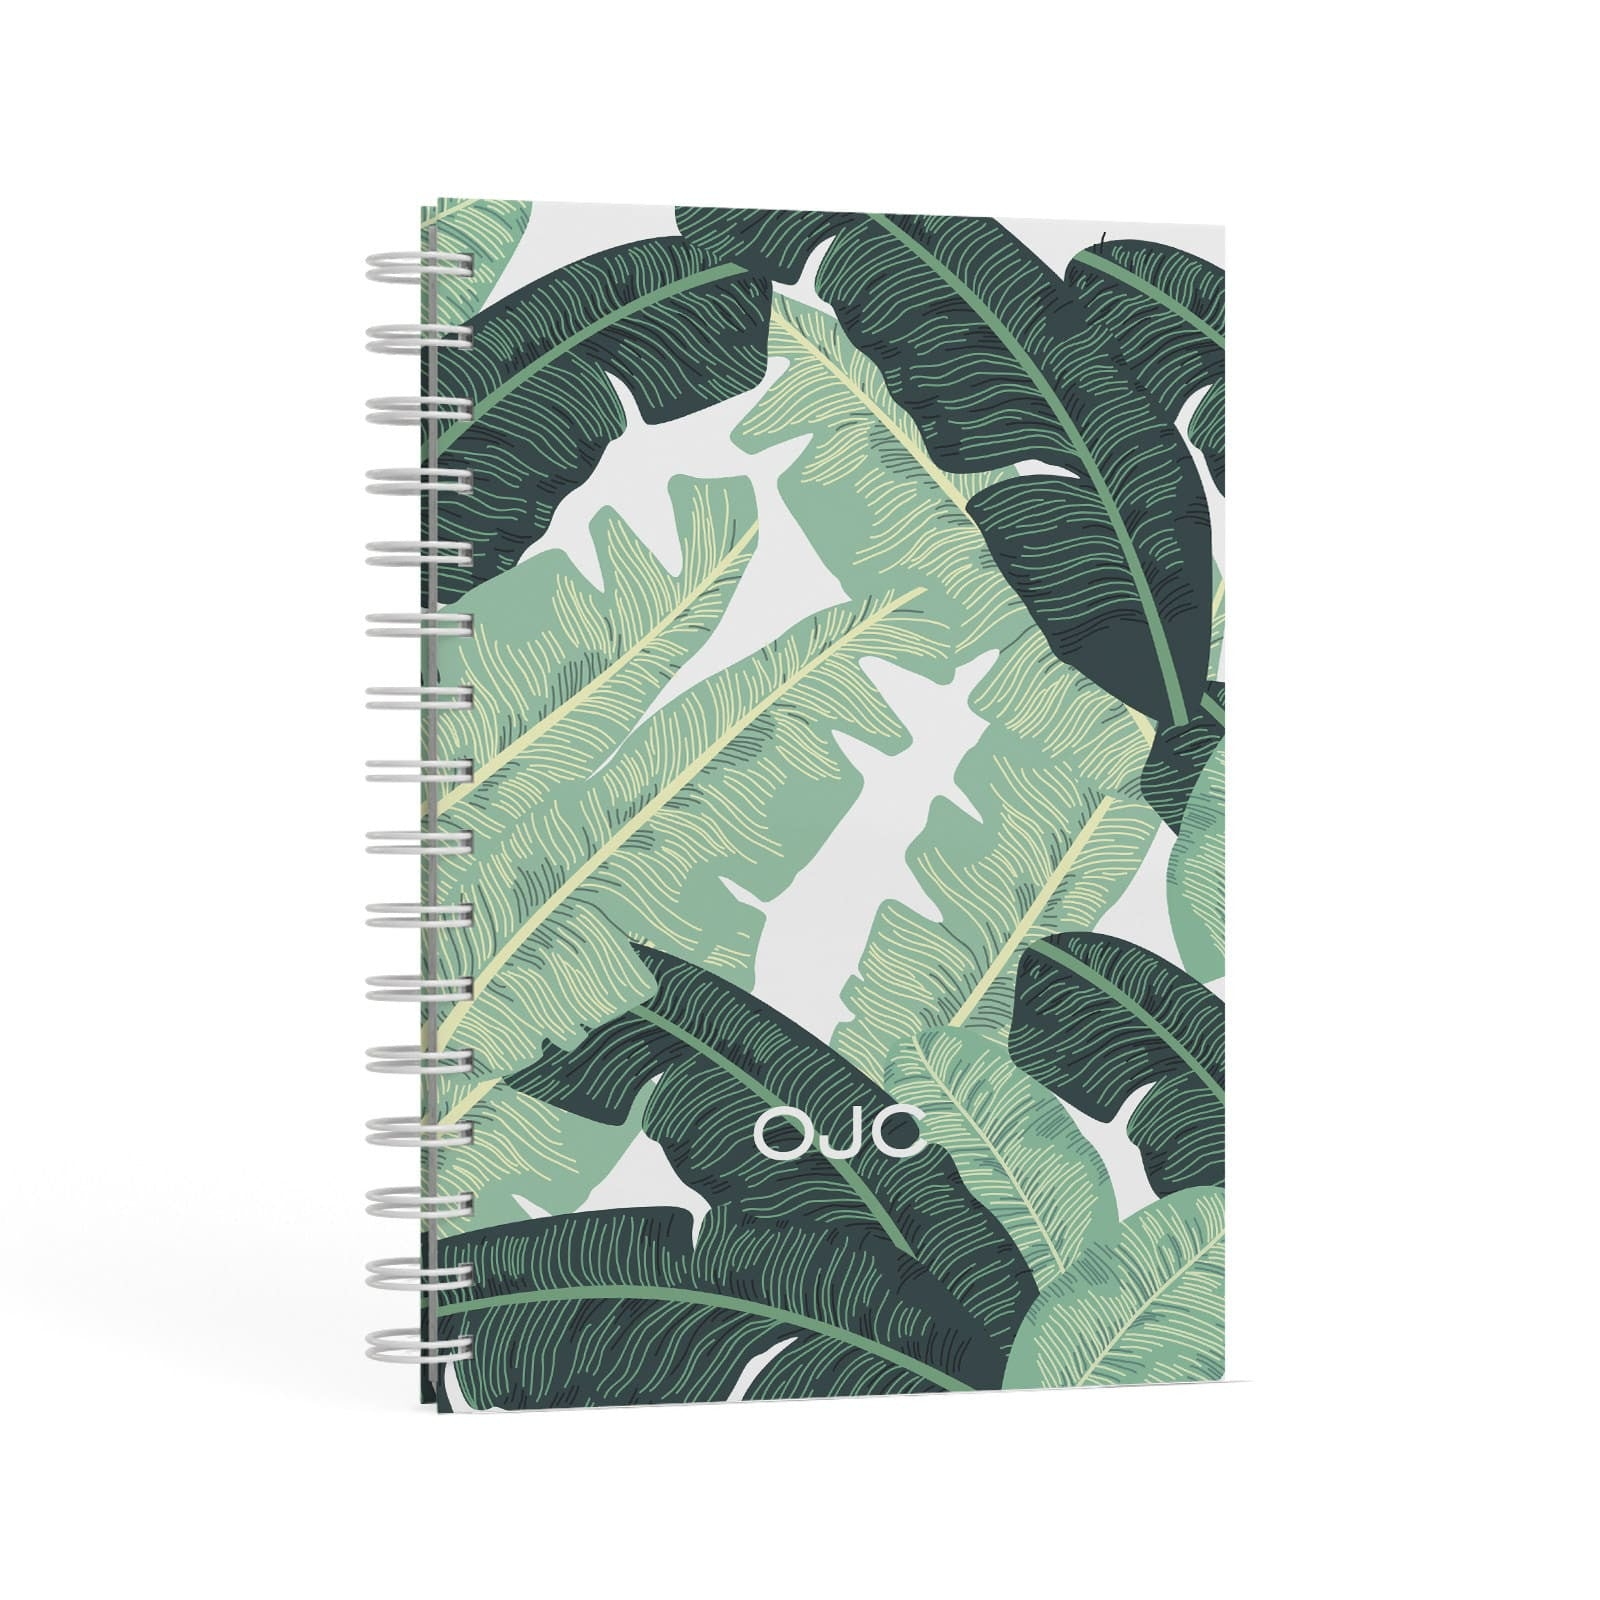 Personalised Palm Banana Leaf A5 Hardcover Notebook Second Side View